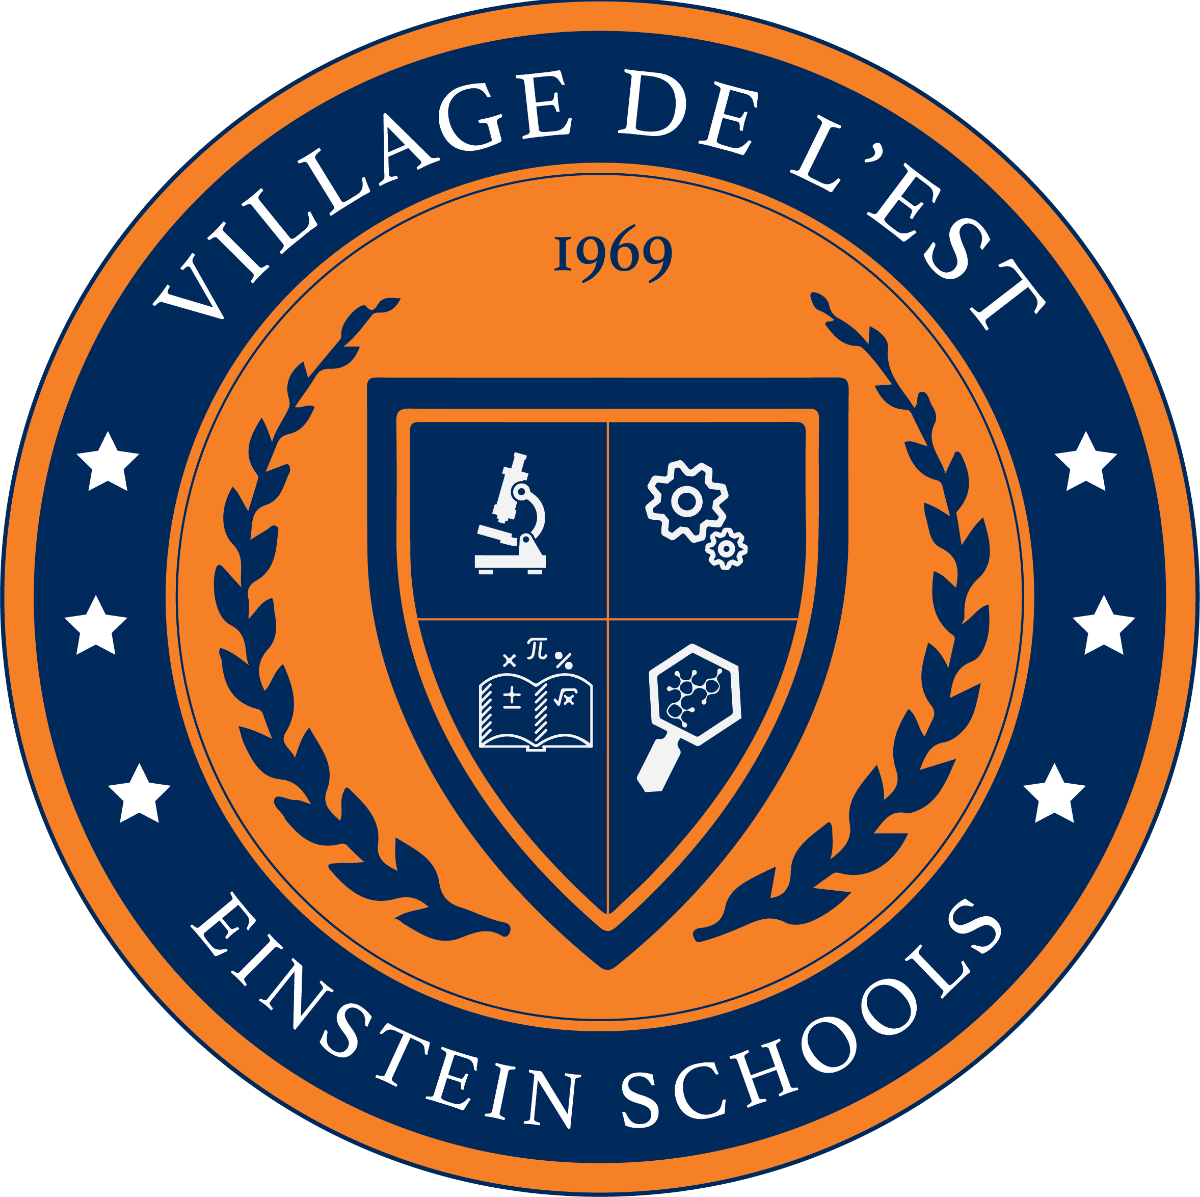 VDLE_Crest%20(1)_edited